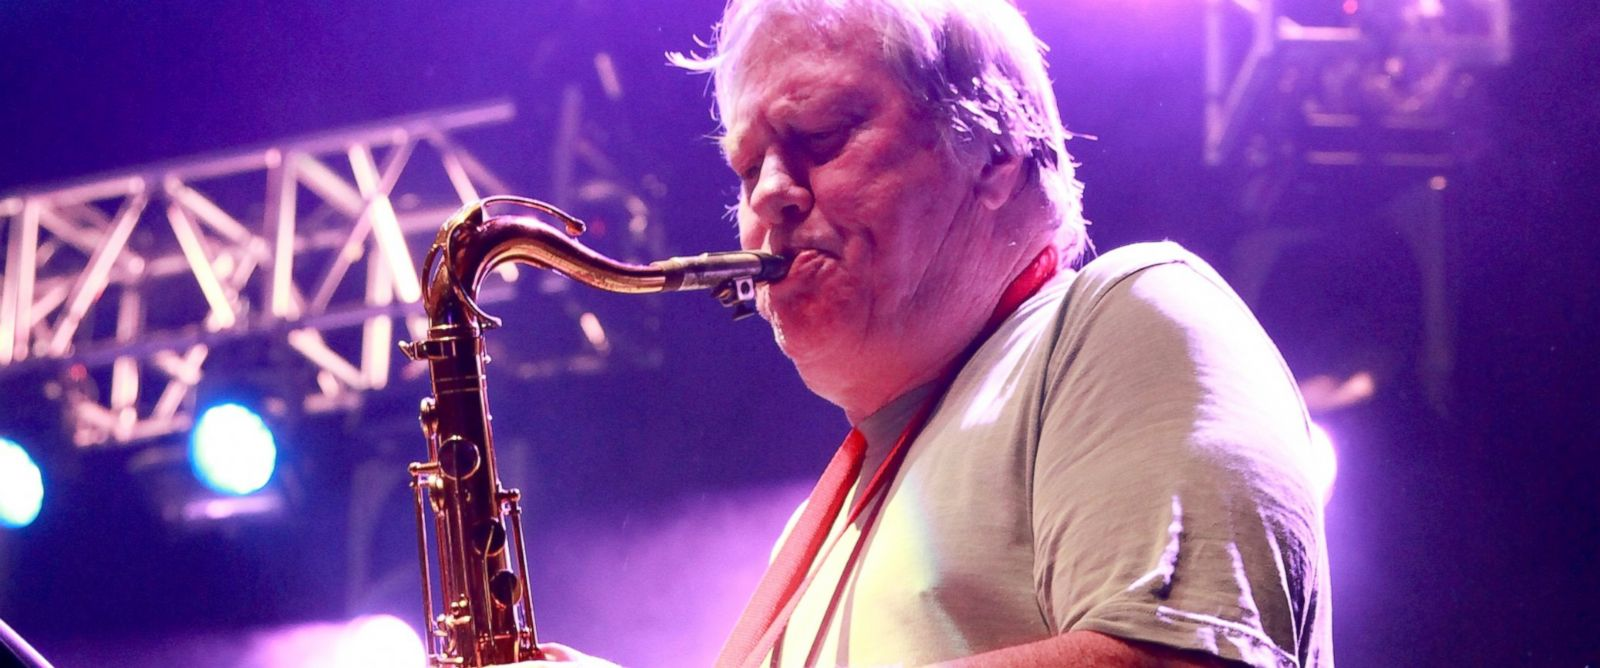 PHOTO: Saxophonist Bobby Keys of The Rolling Stones performs at The Capitol Theatre, Sept. 7, 2012, in Pt Chester, New York.